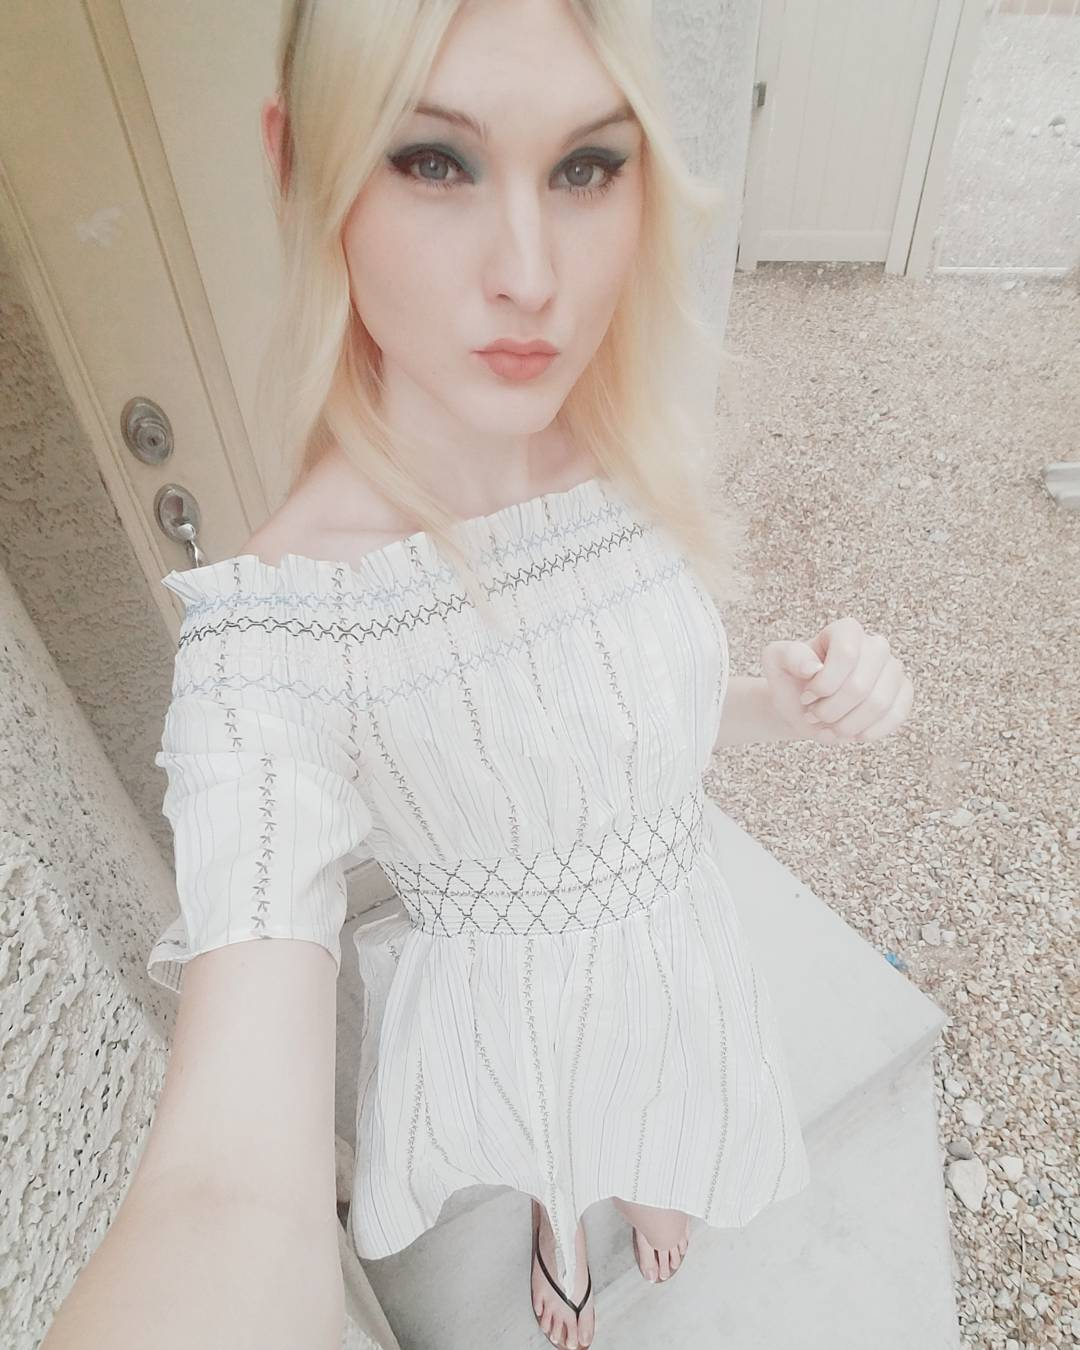 Blonde Trap Jenny Flowers dress selfie